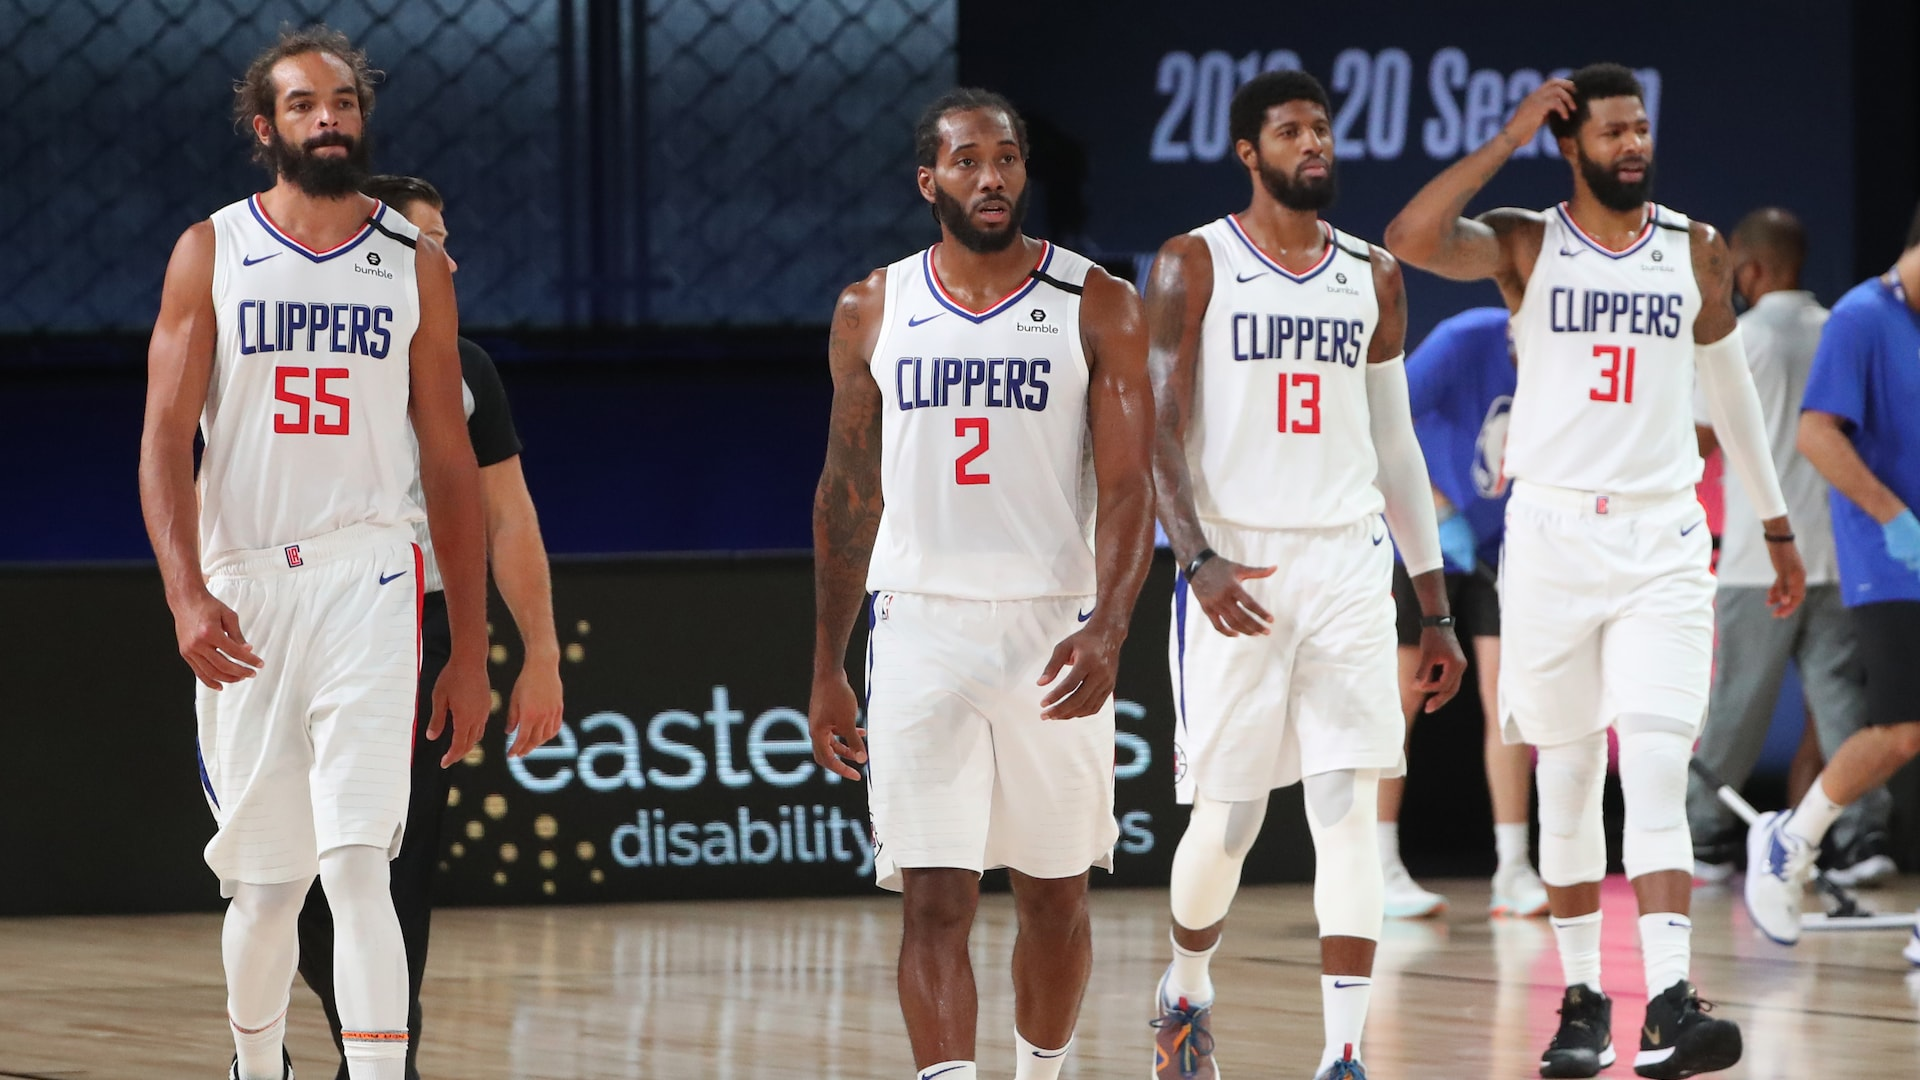 Clippers all in one place, but not yet fully together